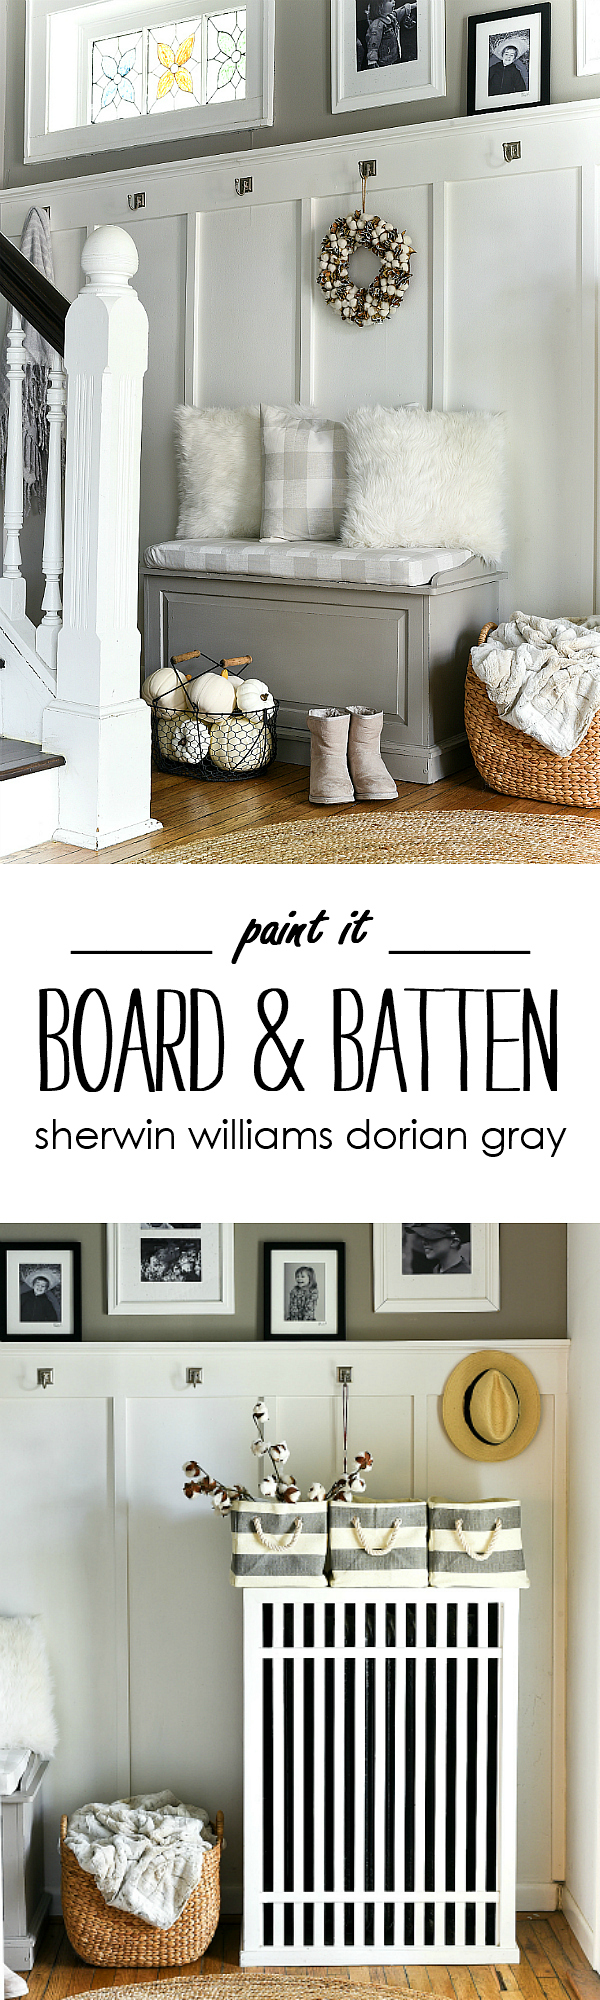 Board and Batten Entry with Sherwin Williams Dorian Gray